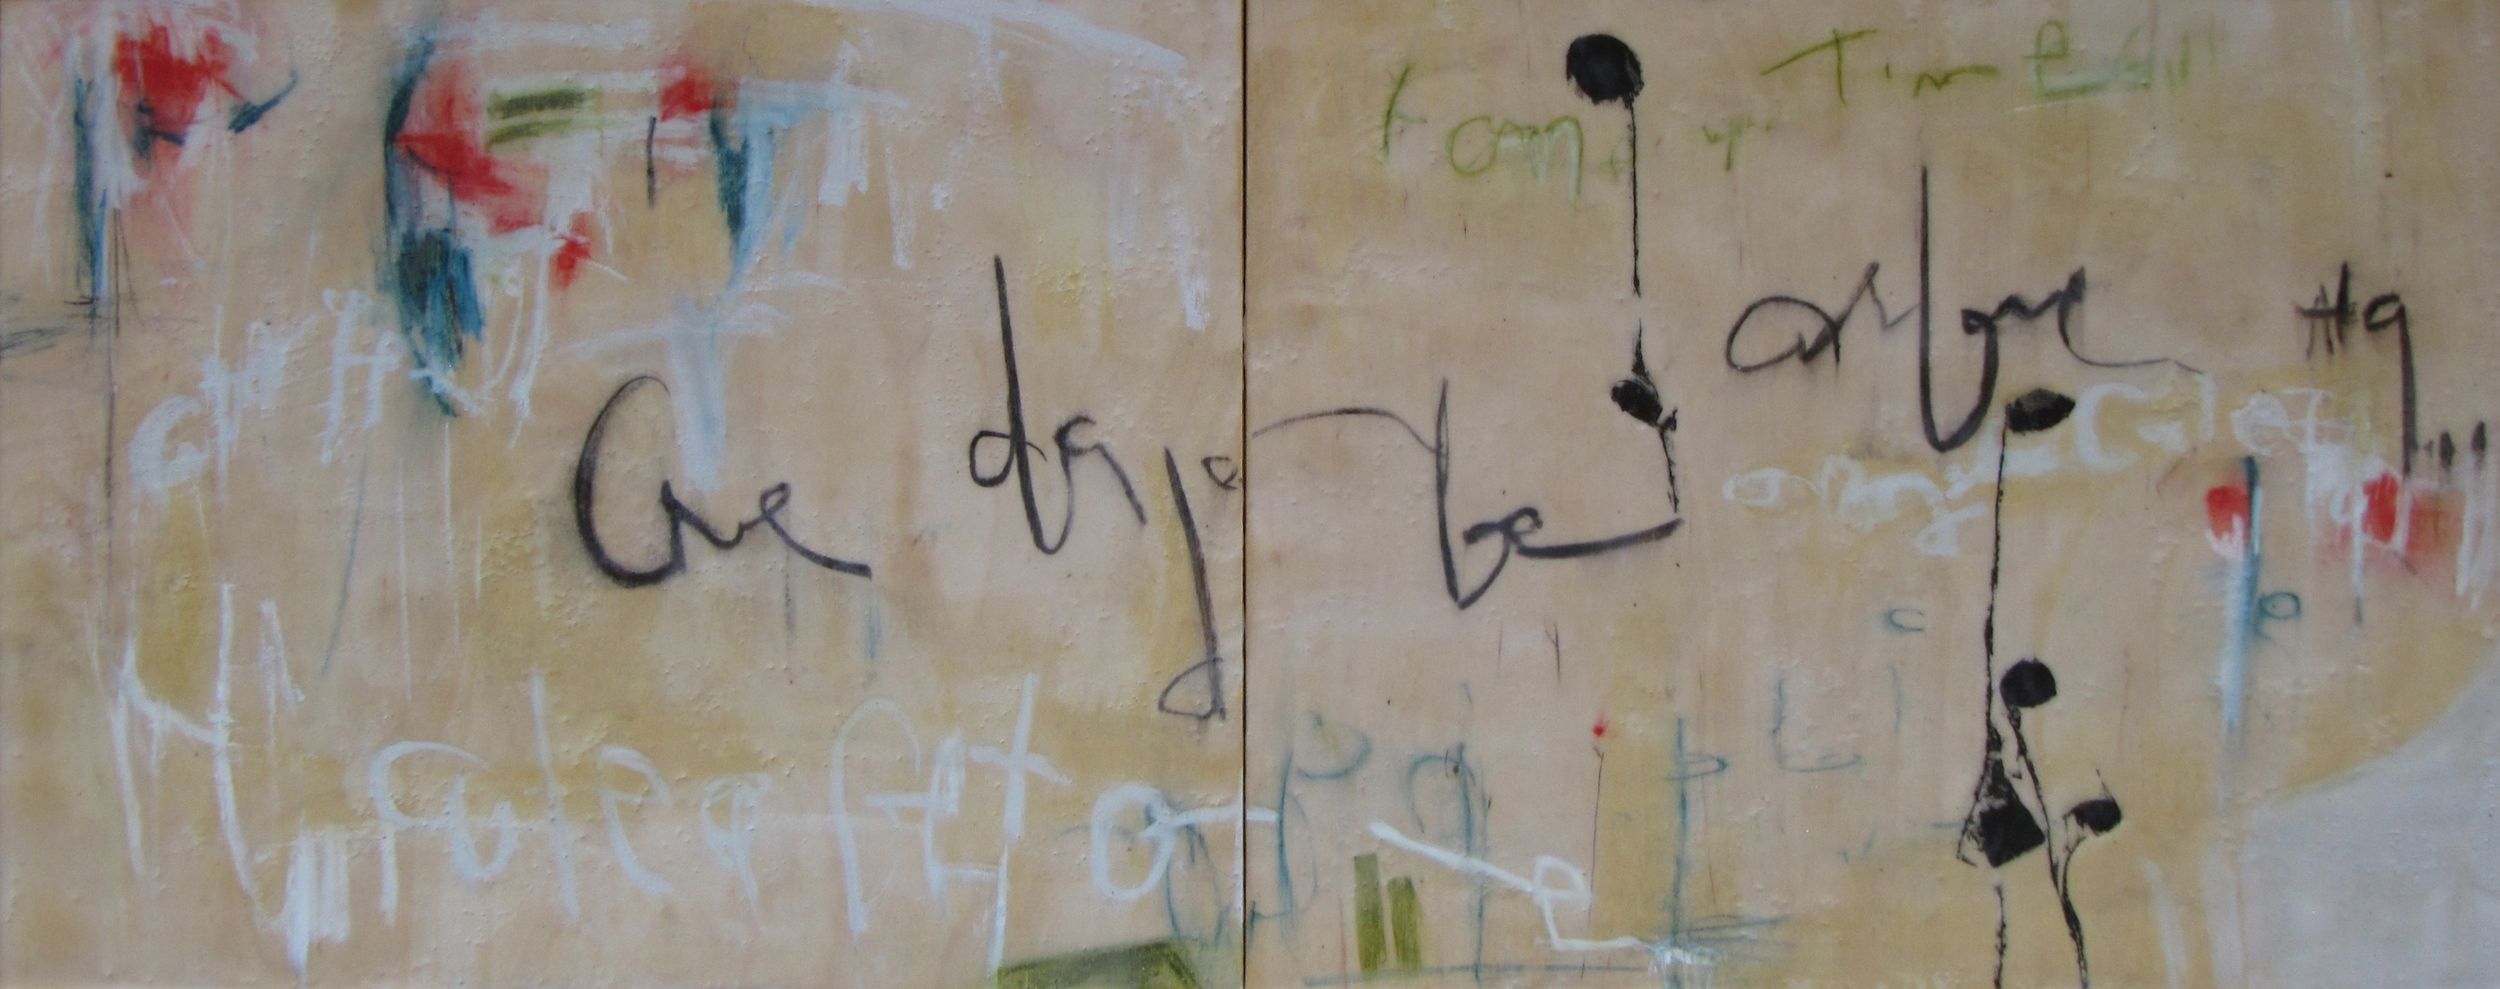 The Writing on the Wall,2011 / Encaustic on wood panel, diptych, 16 x 40